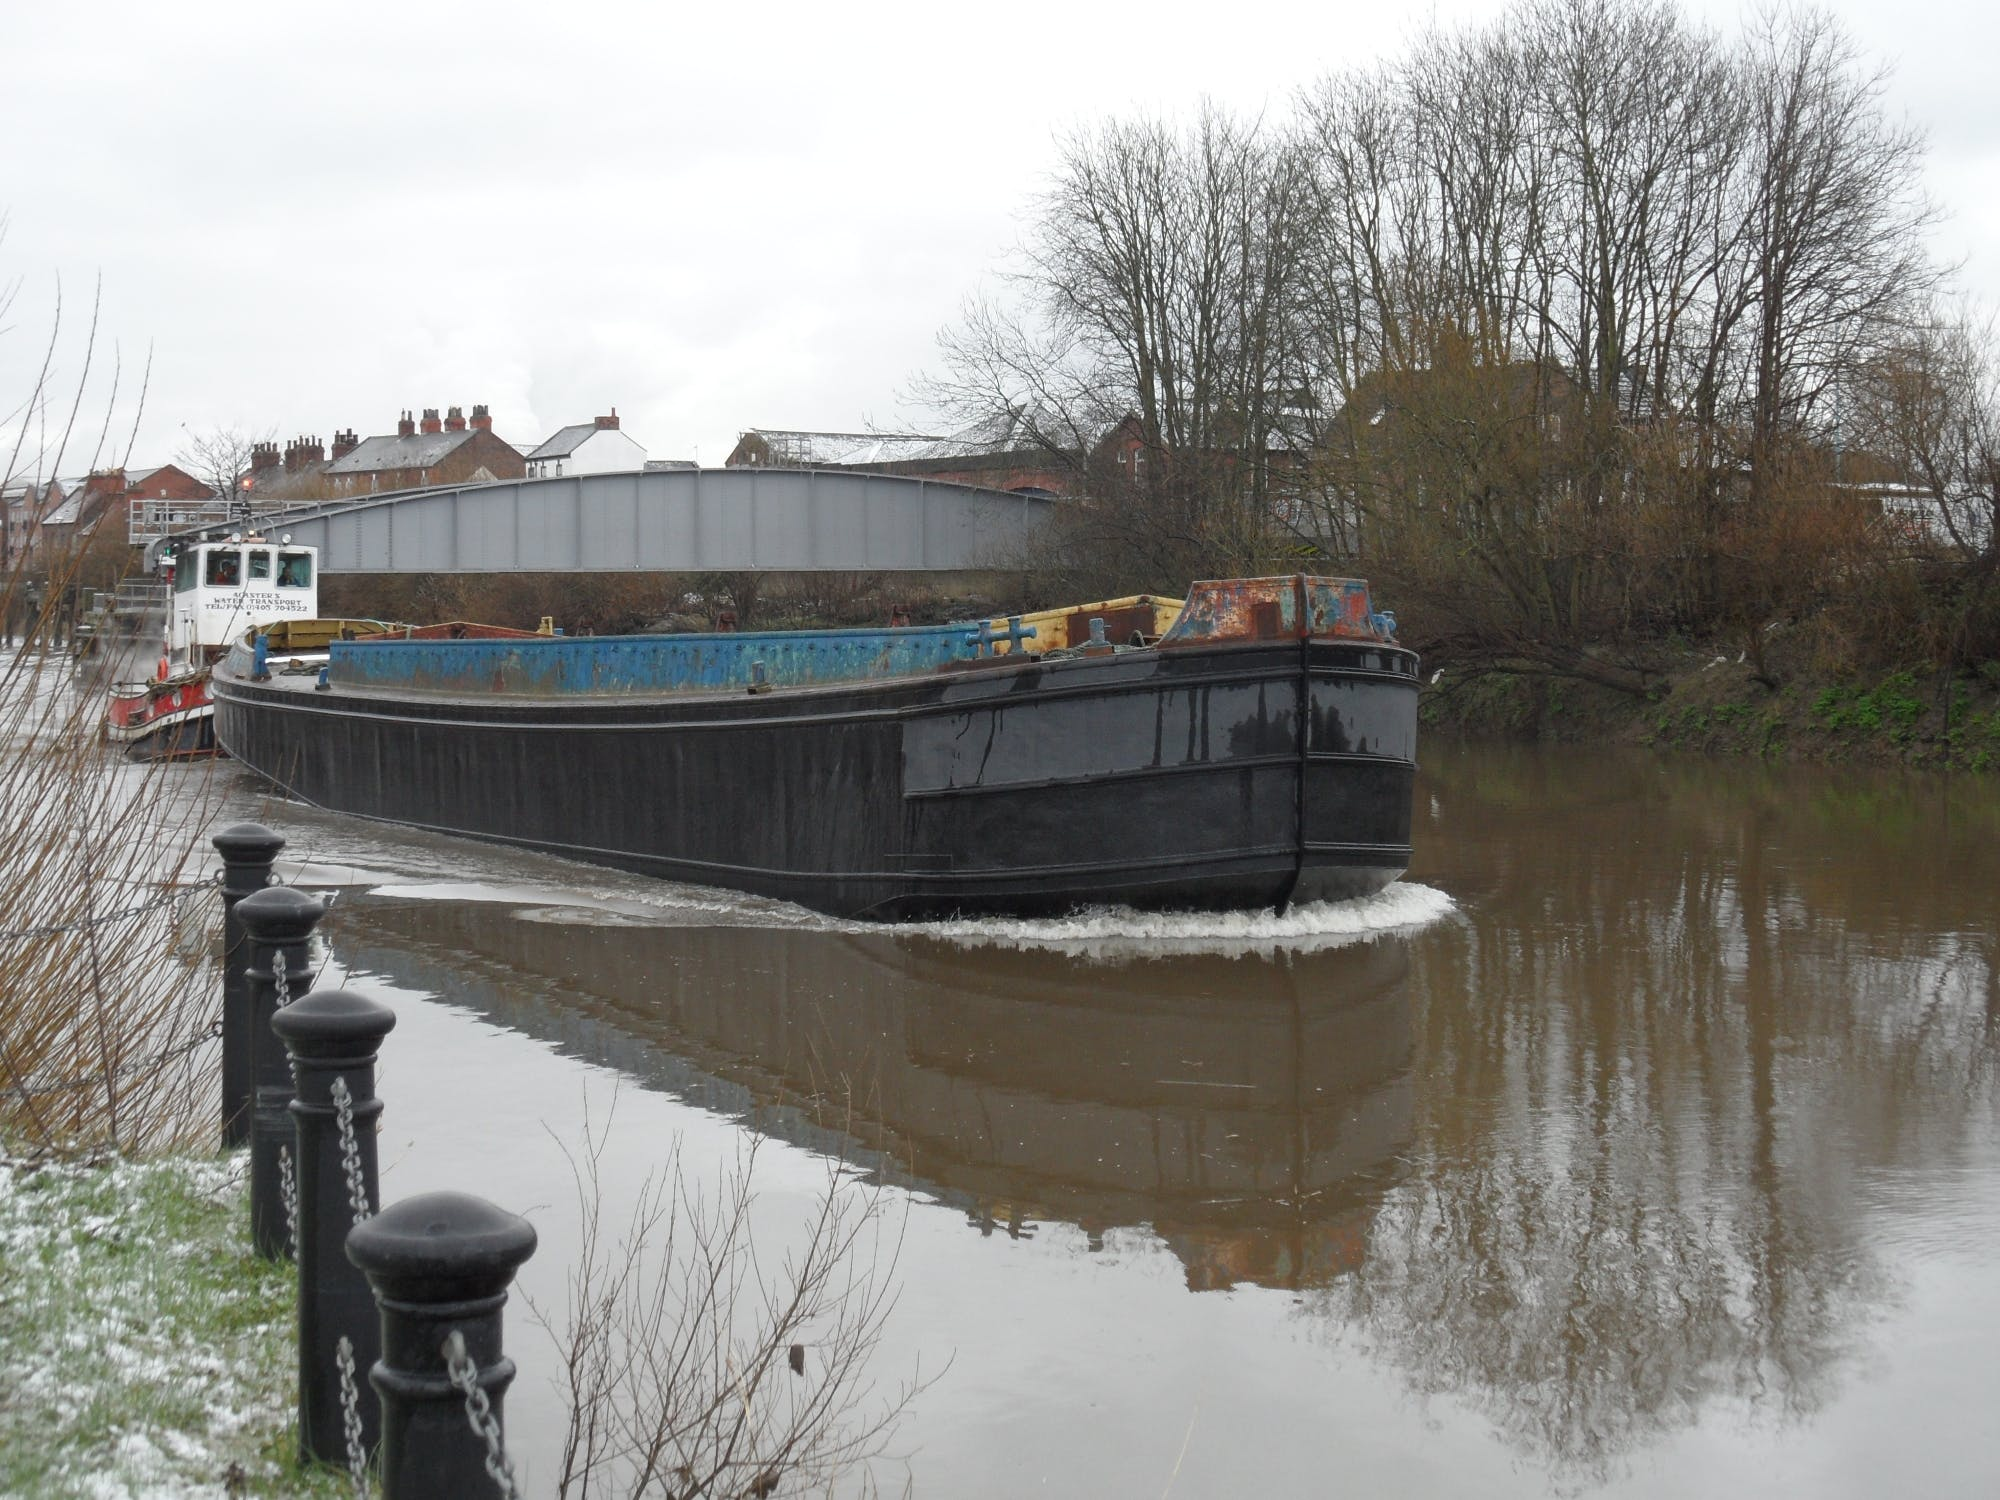 News | Former Selby cargo barge makes a final trip